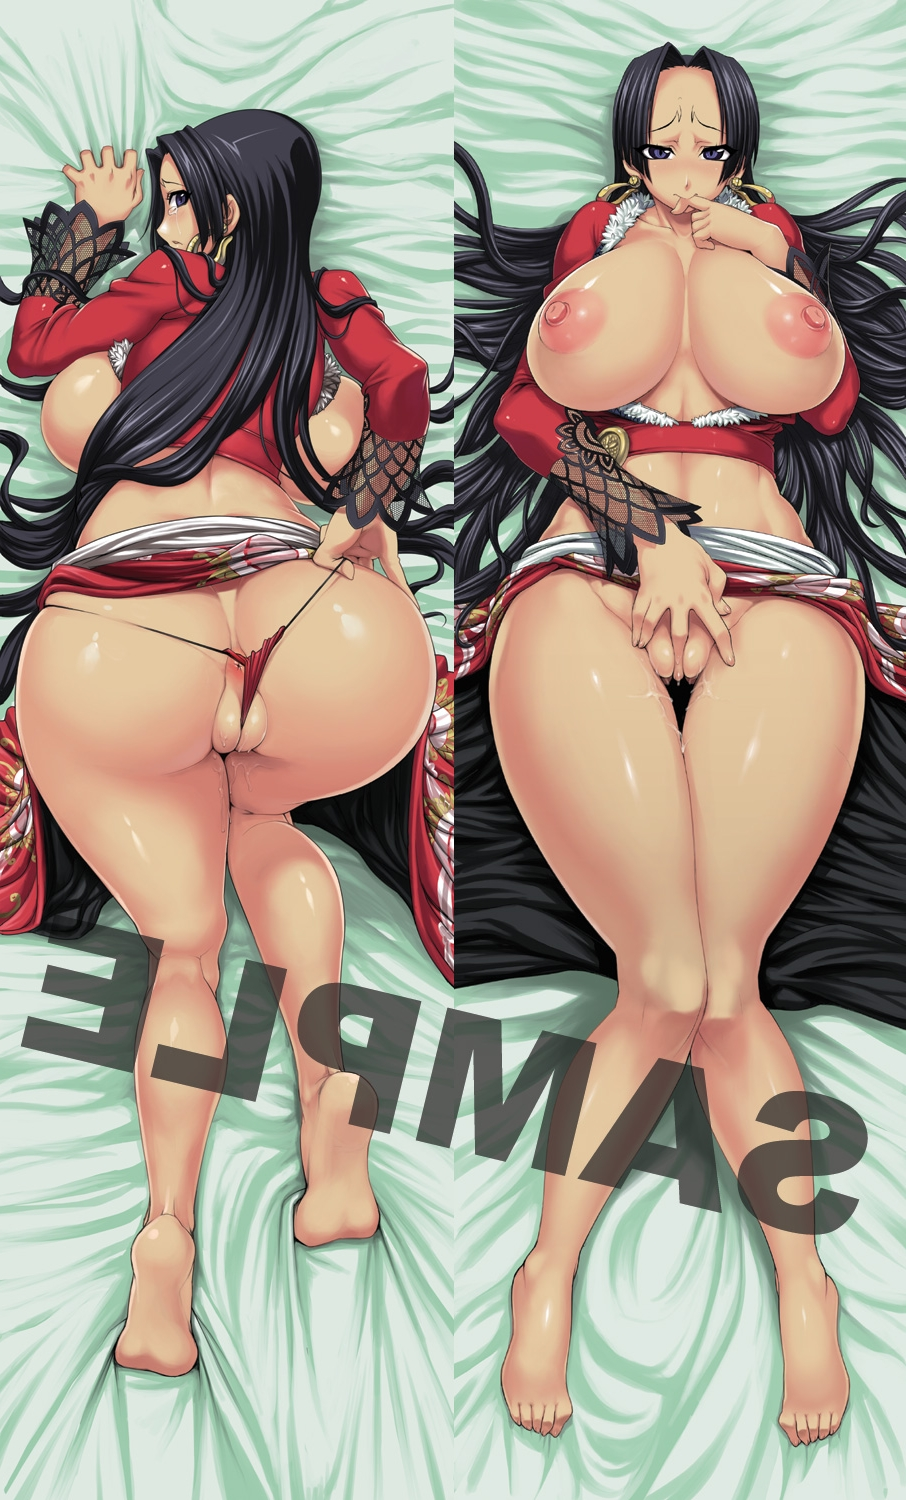 Toon sex pic ##00013011627 anus backboob barefeet bed sheet biting black hair blue eyes boa hancock breasts cameltoe crop top curvy dakimakura dat ass earrings fat mons feet female finger biting flossing highres hips huge ass huge breasts jewelry jun (rojiura jack) long hair looking back lying masturbation midriff nipples no bra one piece open clothes open shirt panties pussy pussy juice red panties rojiura jack sample see-through sheet grab shirt skirt skirt lift solo tear thick thighs thigh gap thighs thong uncensored underwear very long hair watermark wedgie wide hips